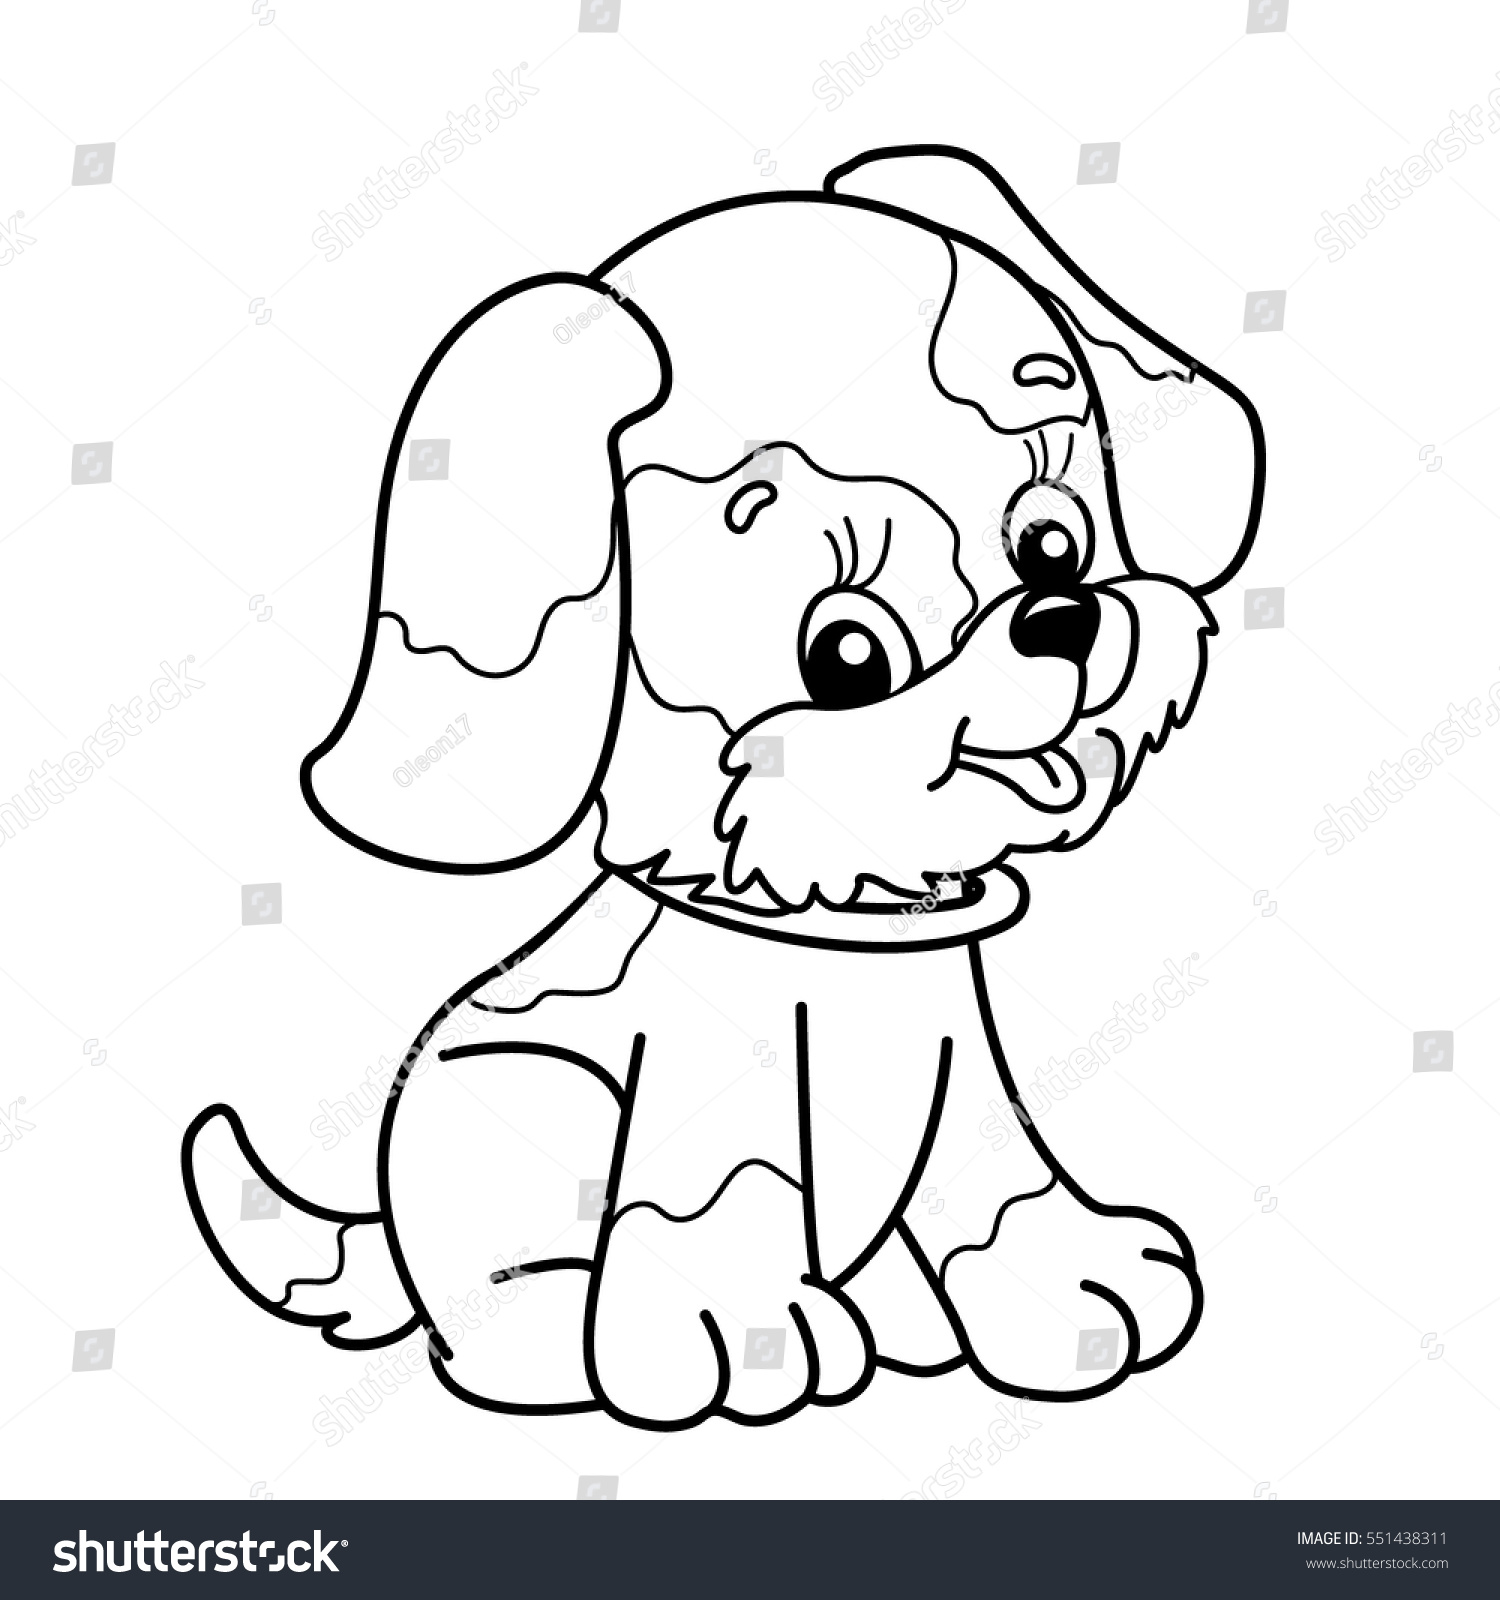 coloring page outline cartoon dog cute stock vector 551438311